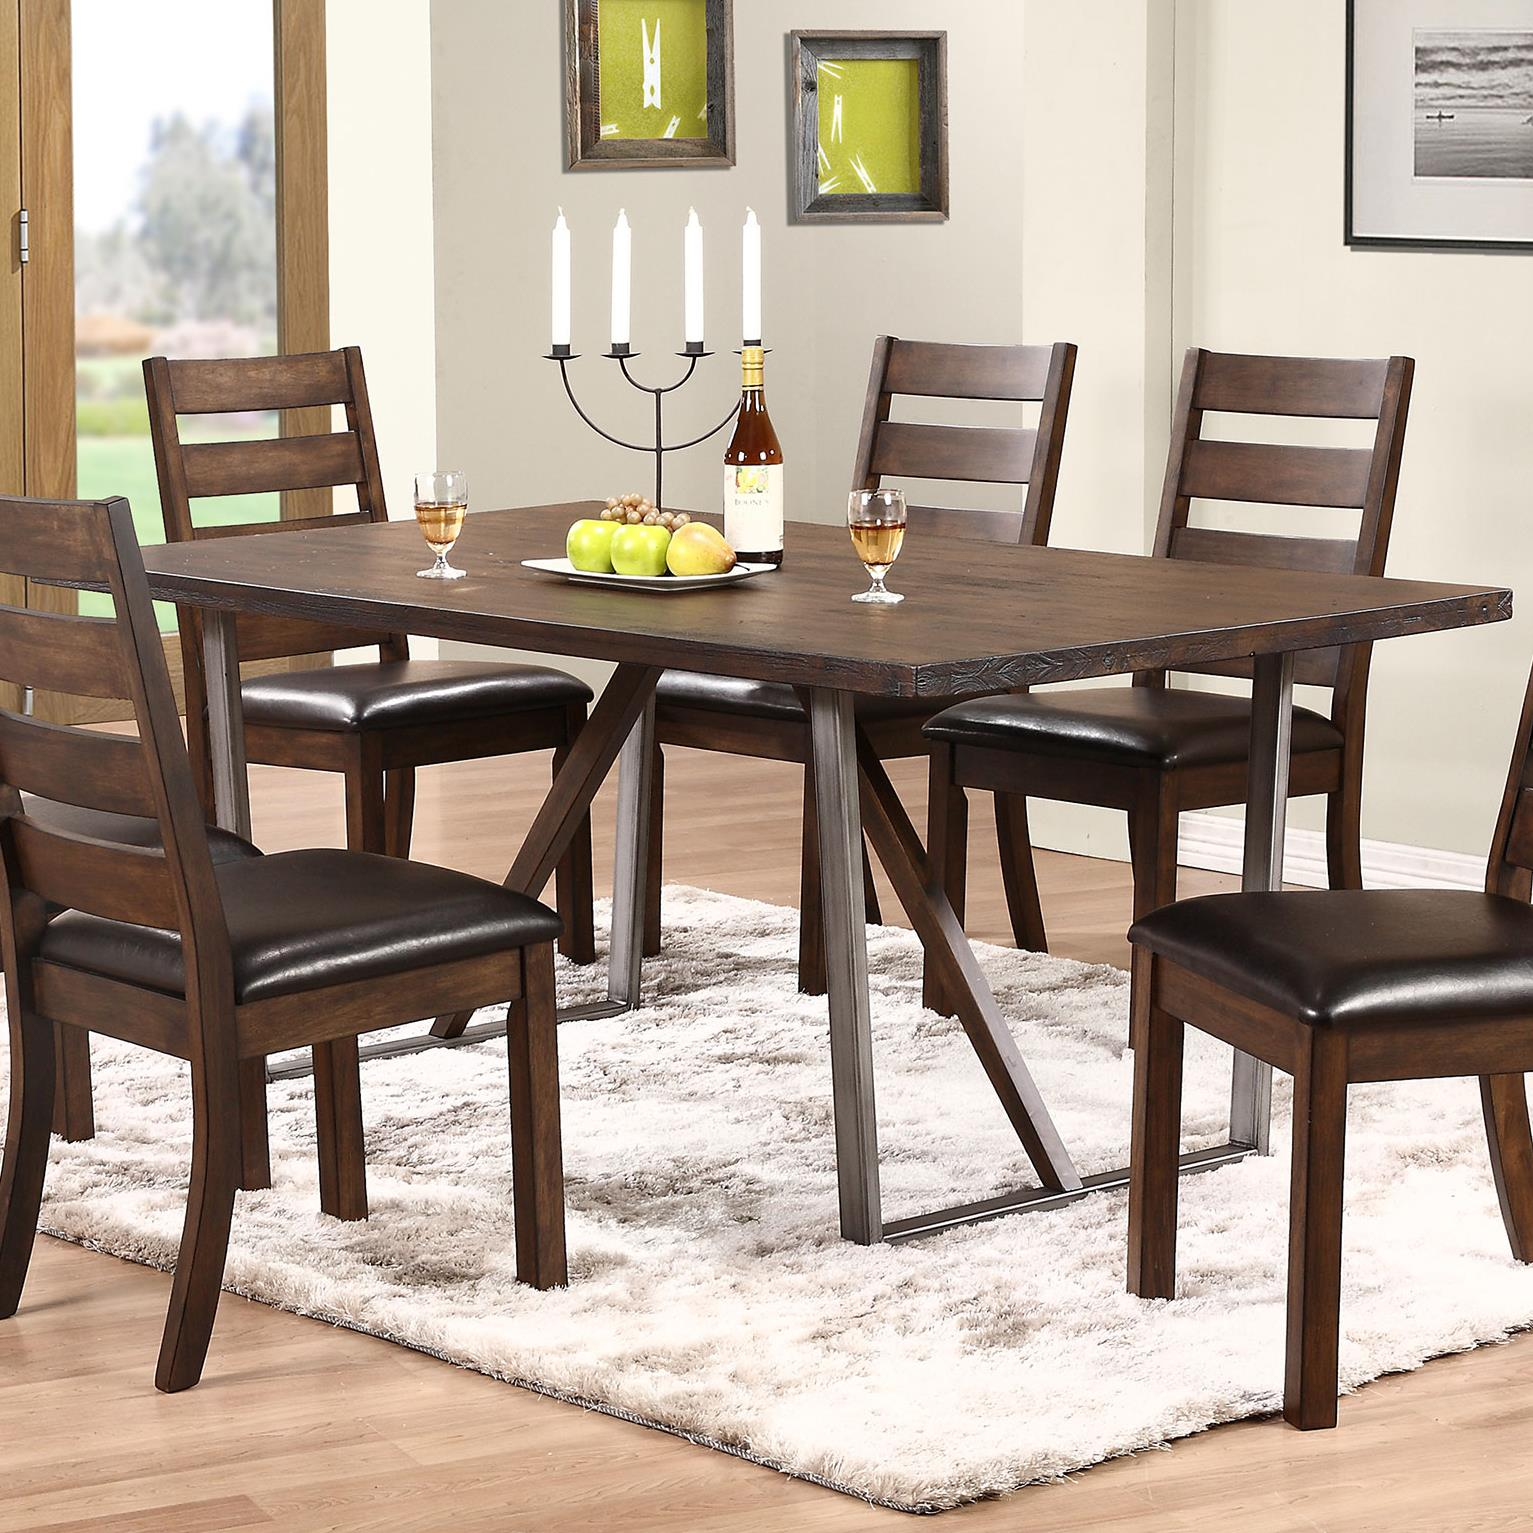 Kendall Trestle Table by Winners Only at Lindy's Furniture Company